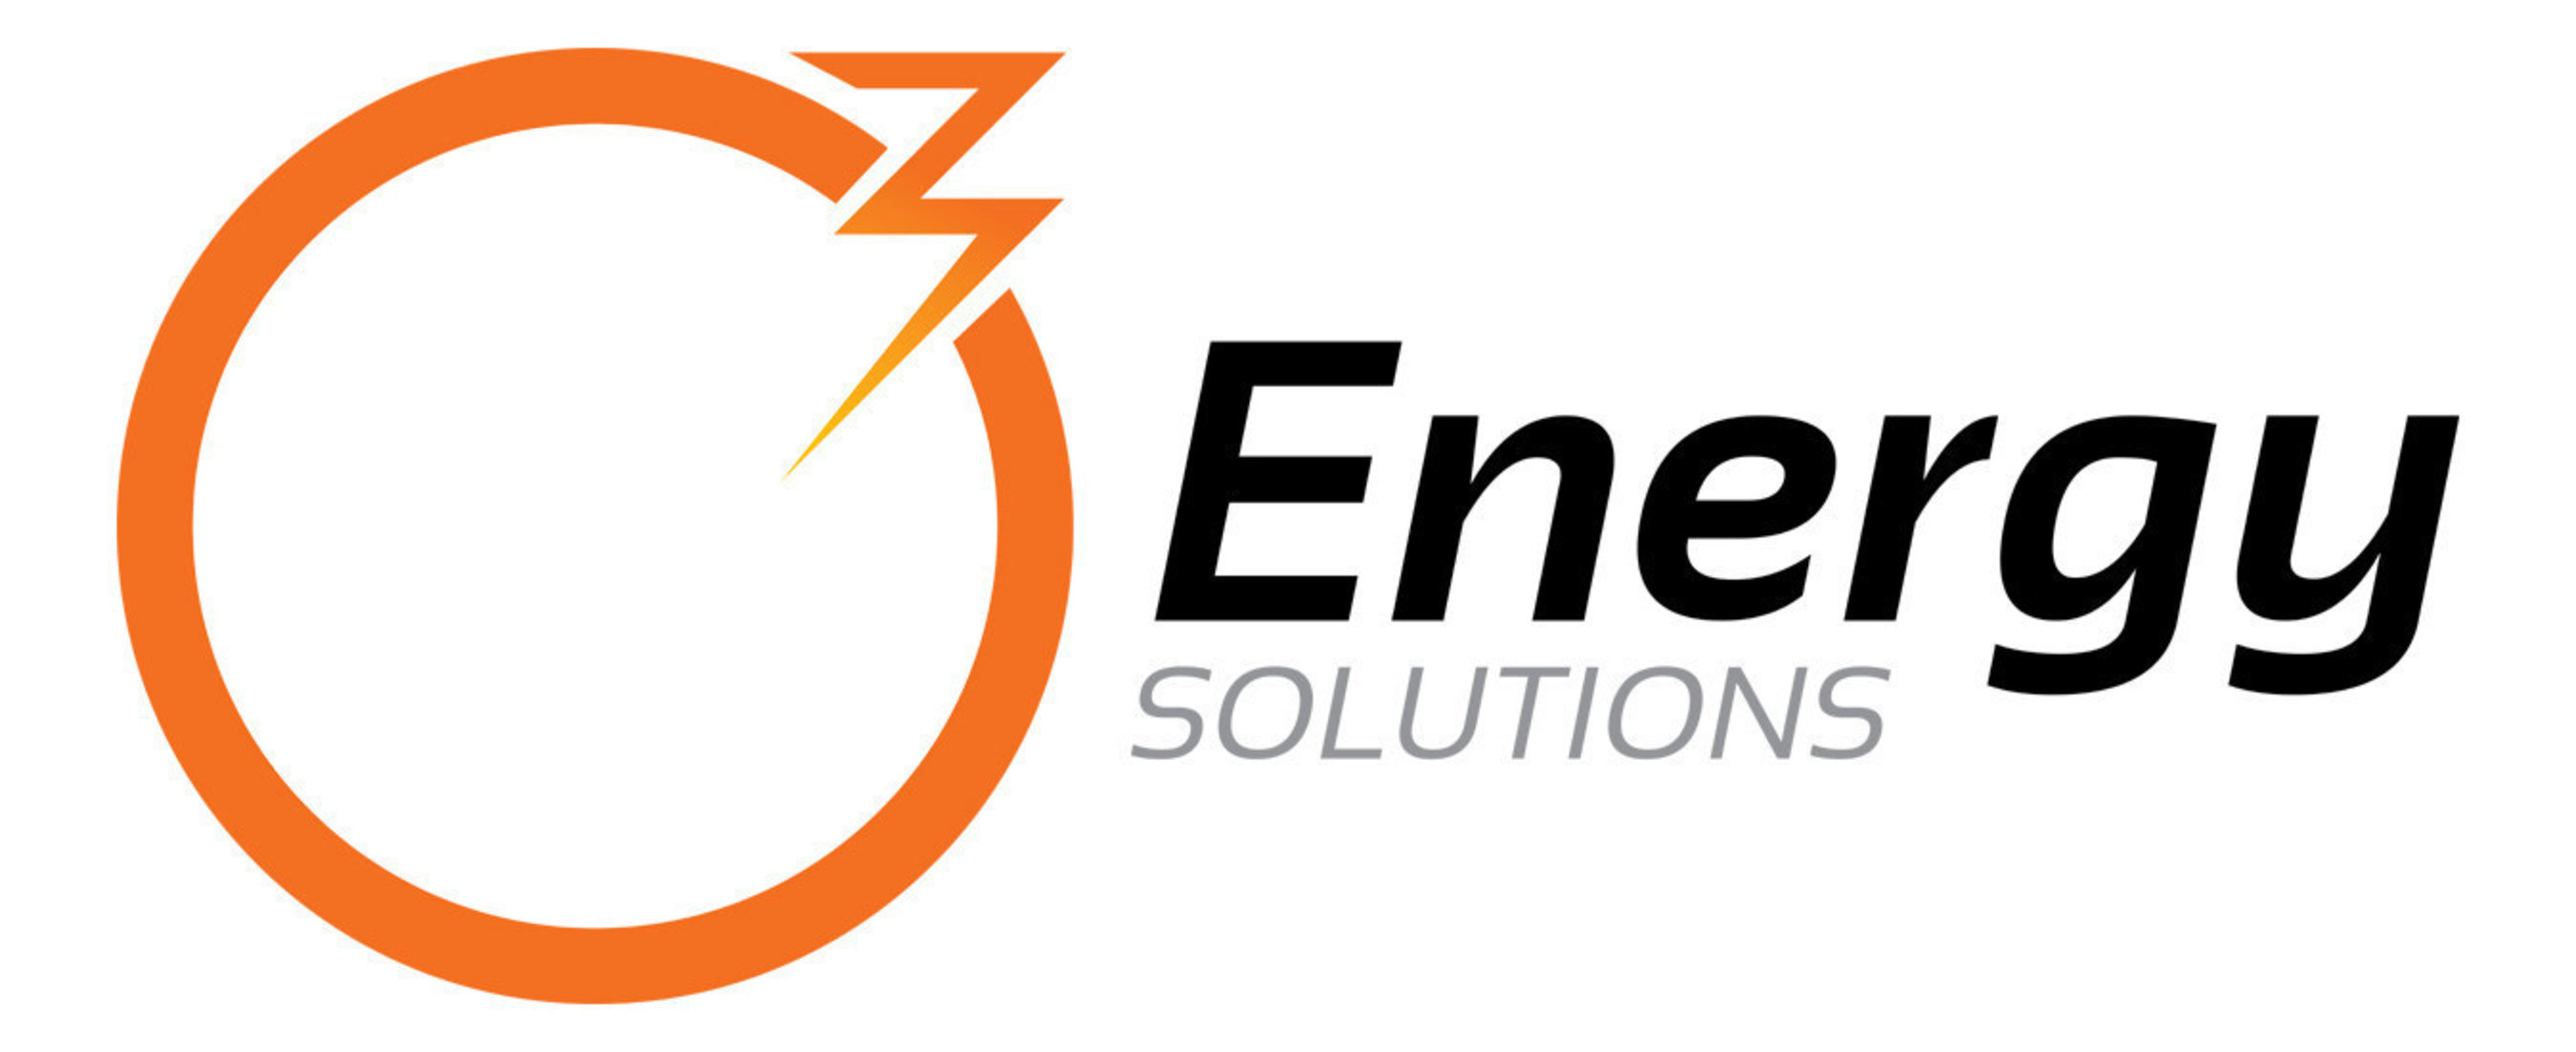 O3 Energy Solutions Partners With the Foursquare Church Foundation To Develop Multiple Solar Projects